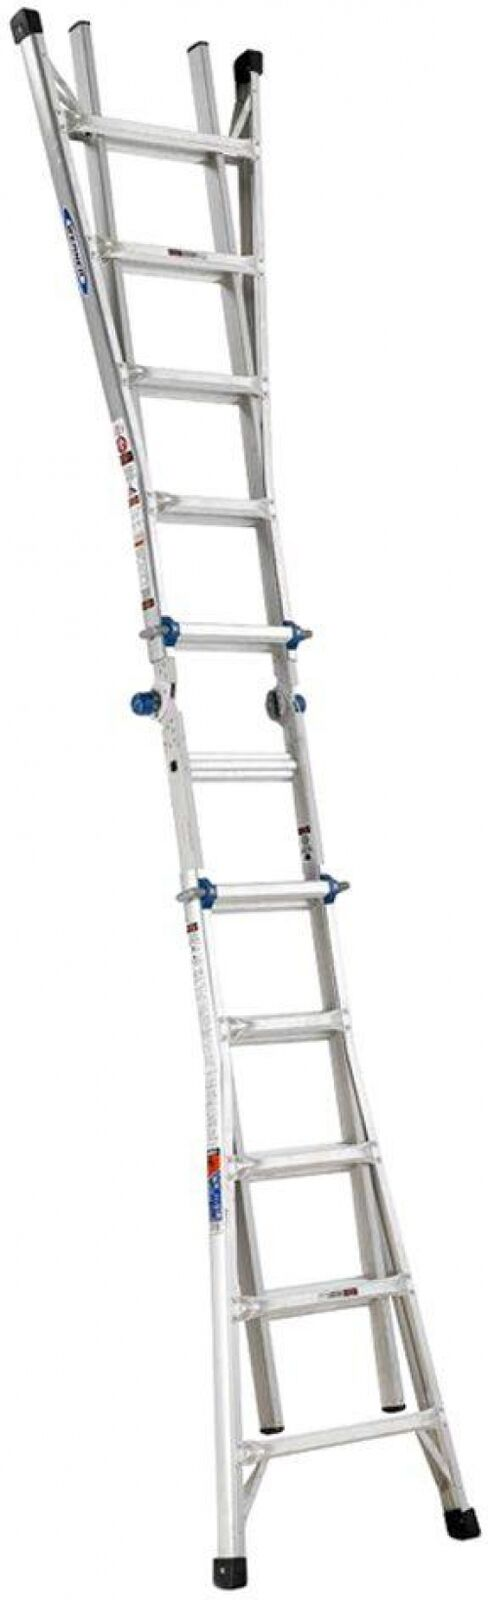 Multiposition Ladder Telescoping Twin Steps Aluminum Load Capacity 300 Pounds